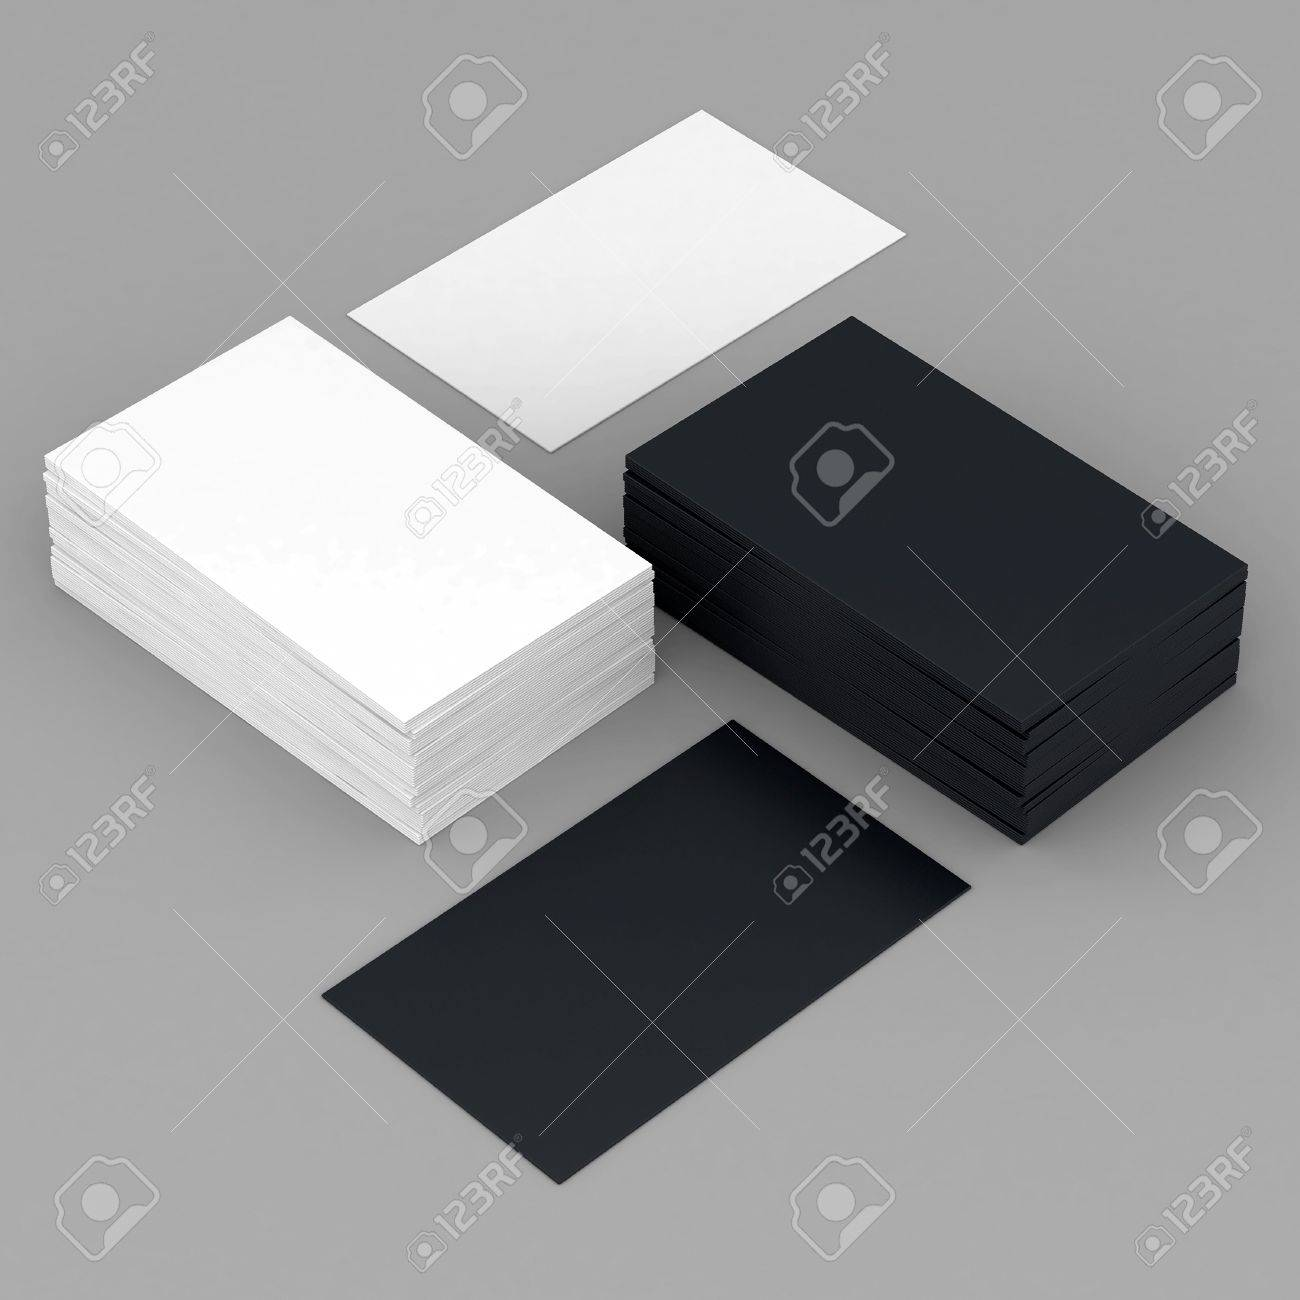 Business cards blank mockup template gray background stock photo business cards blank mockup template gray background stock photo 22013580 reheart Image collections